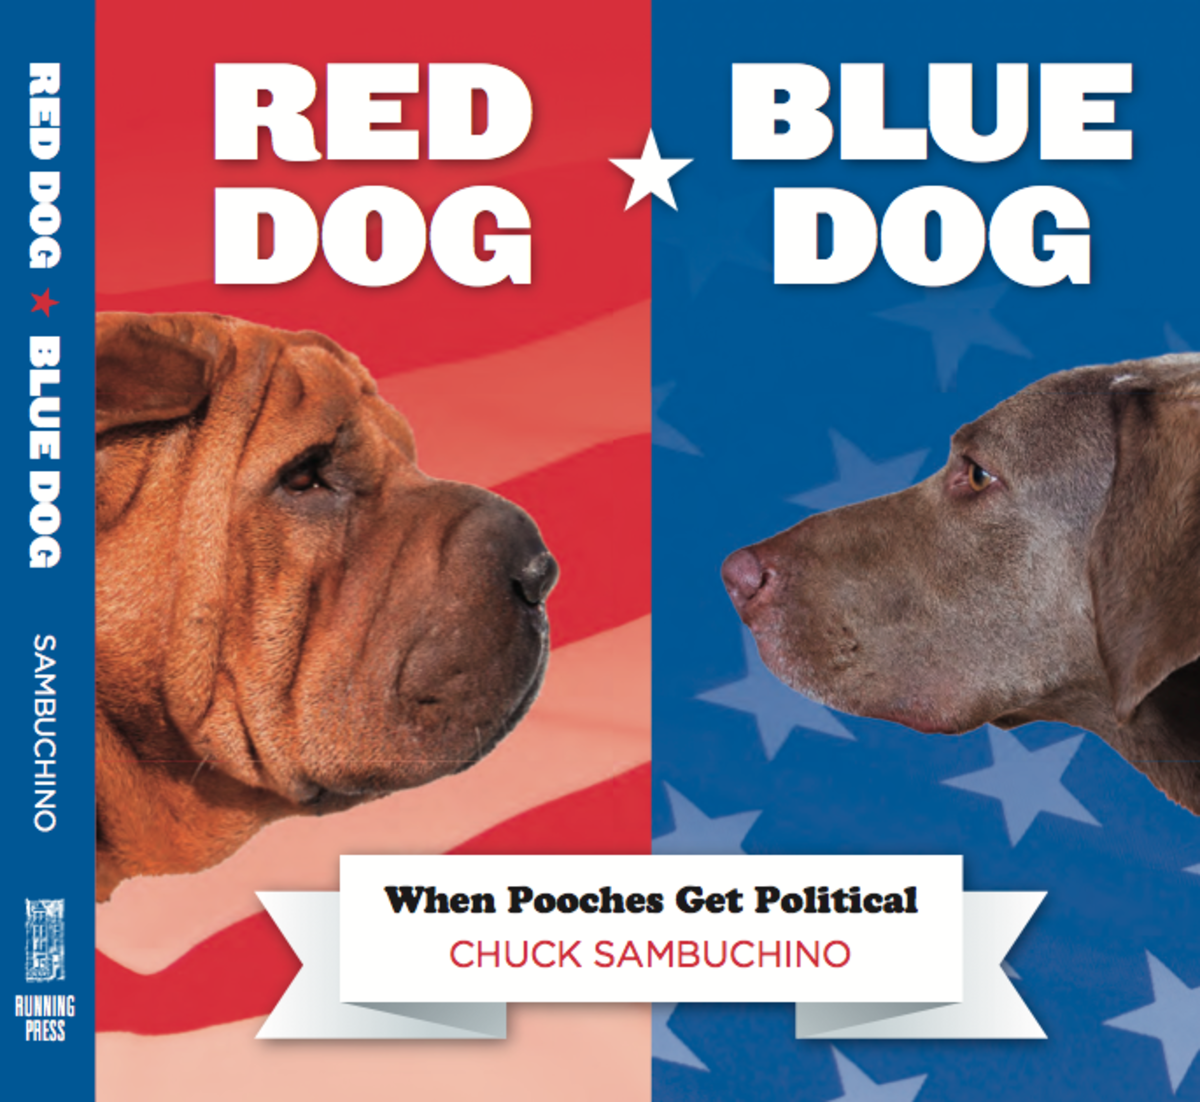 RED DOG / BLUE DOG is due out in July 2012 from Running Press.